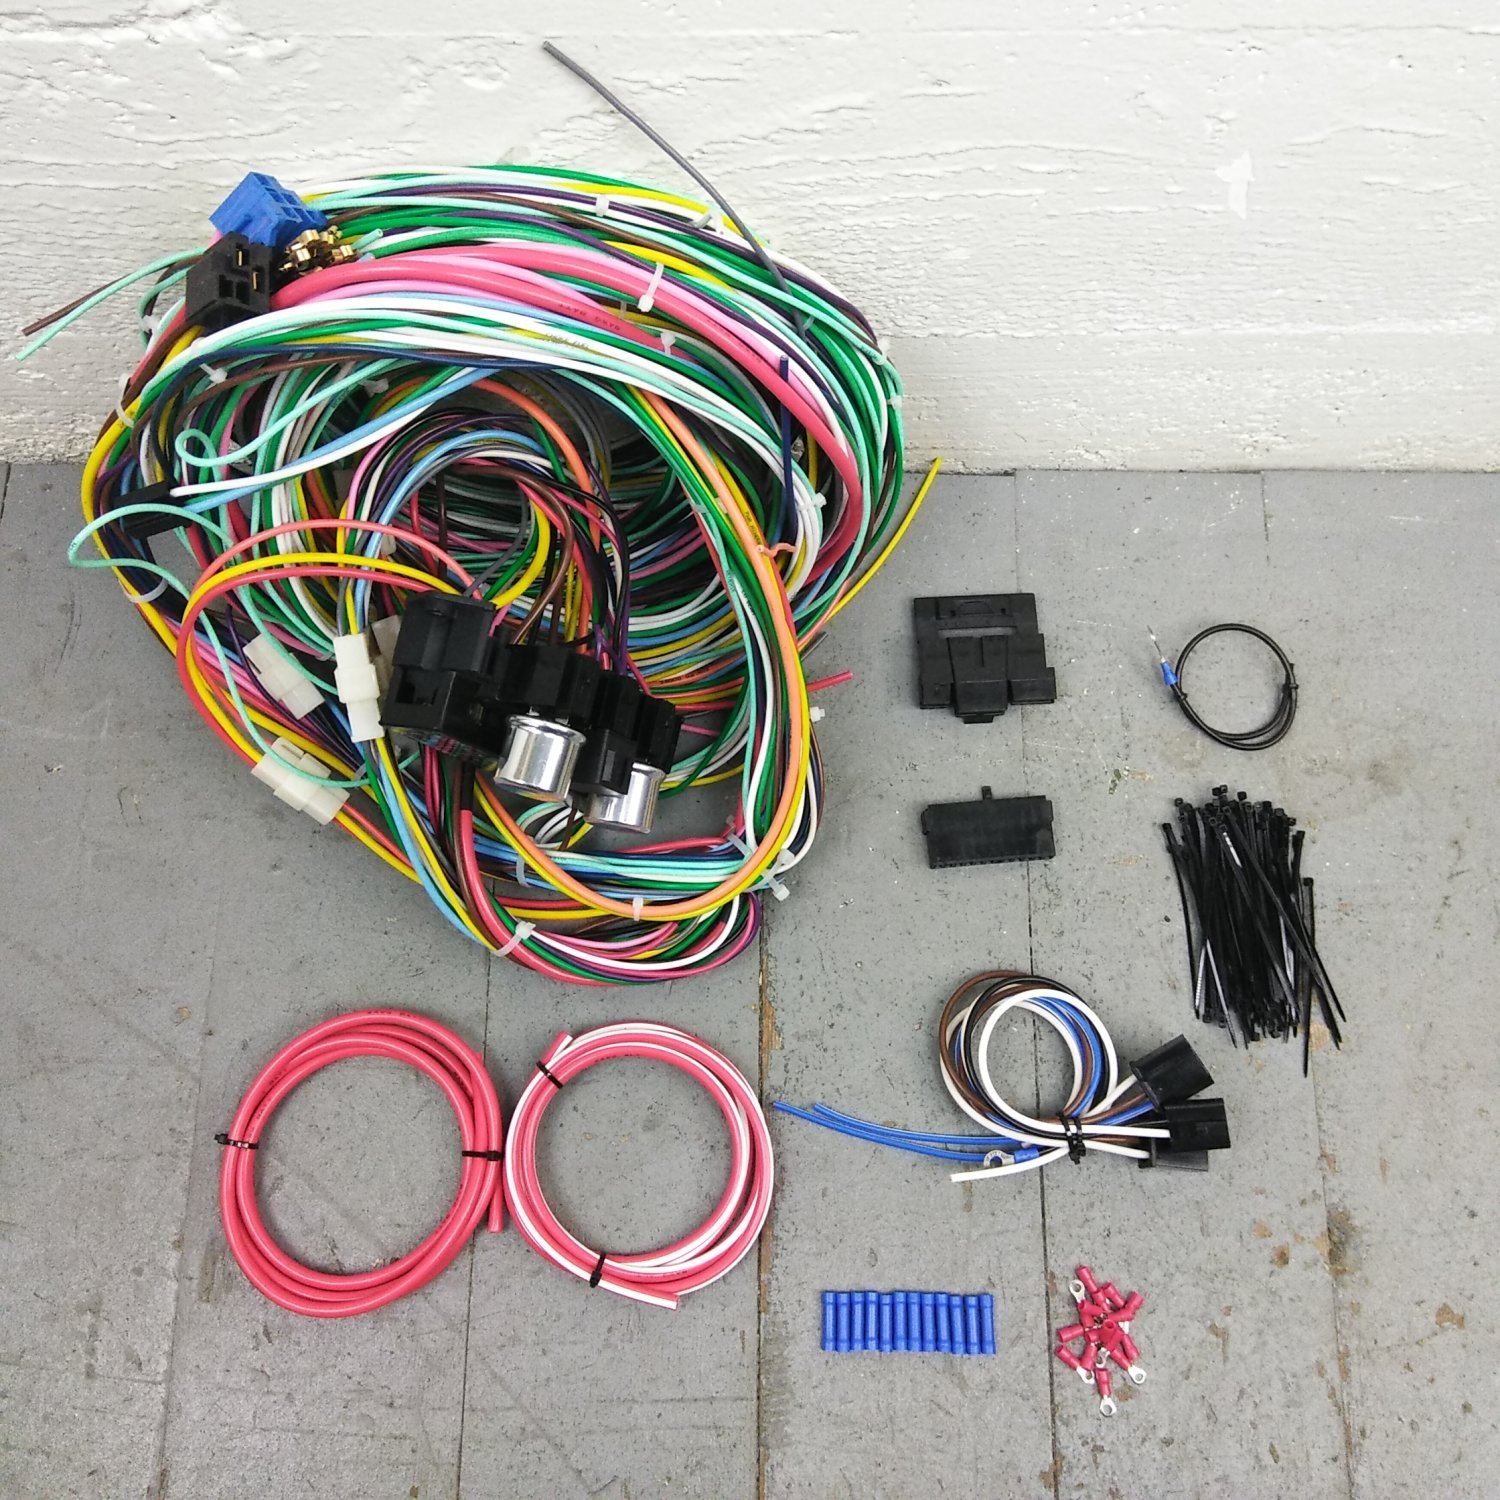 hight resolution of 1948 1952 ford truck wire harness upgrade kit fits painless update1948 1952 ford truck wire harness